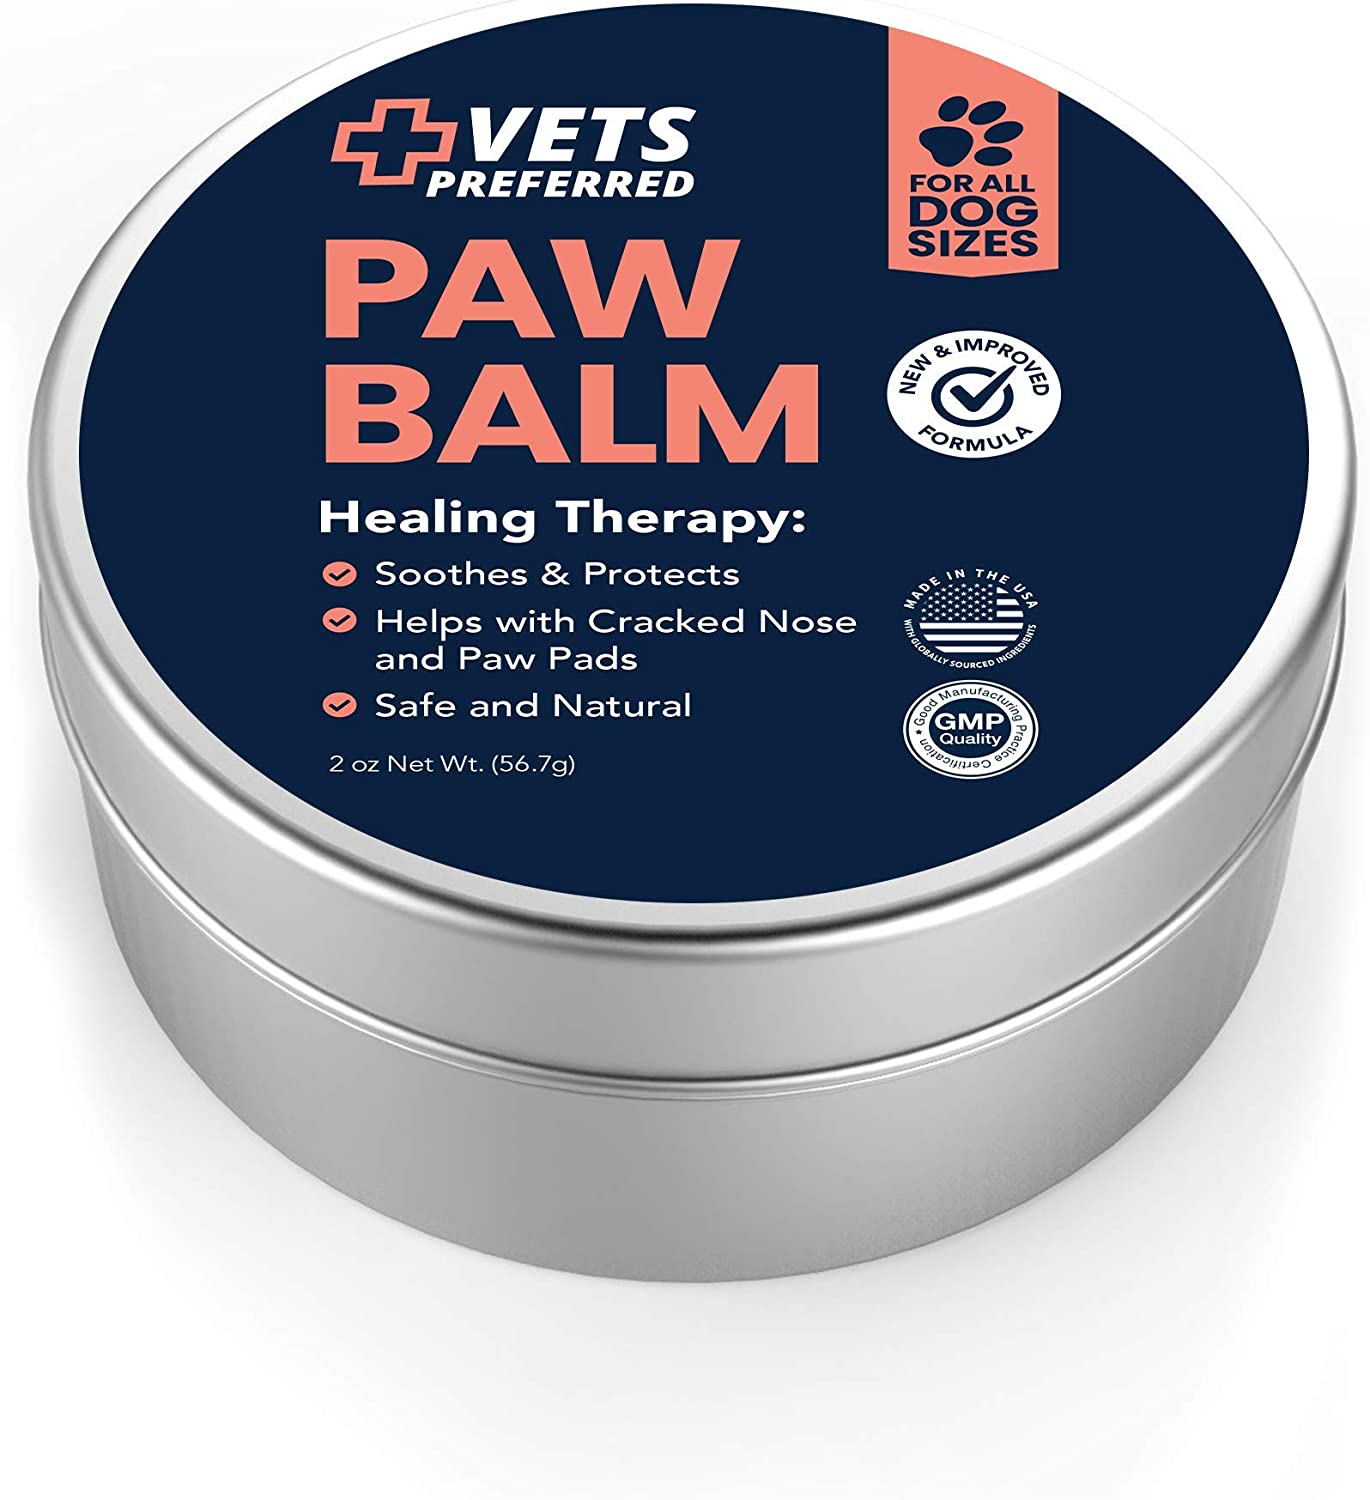 Vets Preferred Advanced Pad Protection   VETERINARIAN-GRADE Dog Paw Balm   Heals, Repairs, and Moisturizes Dry Noses and Paws   Effective  Ideal for Extreme Weather Conditions